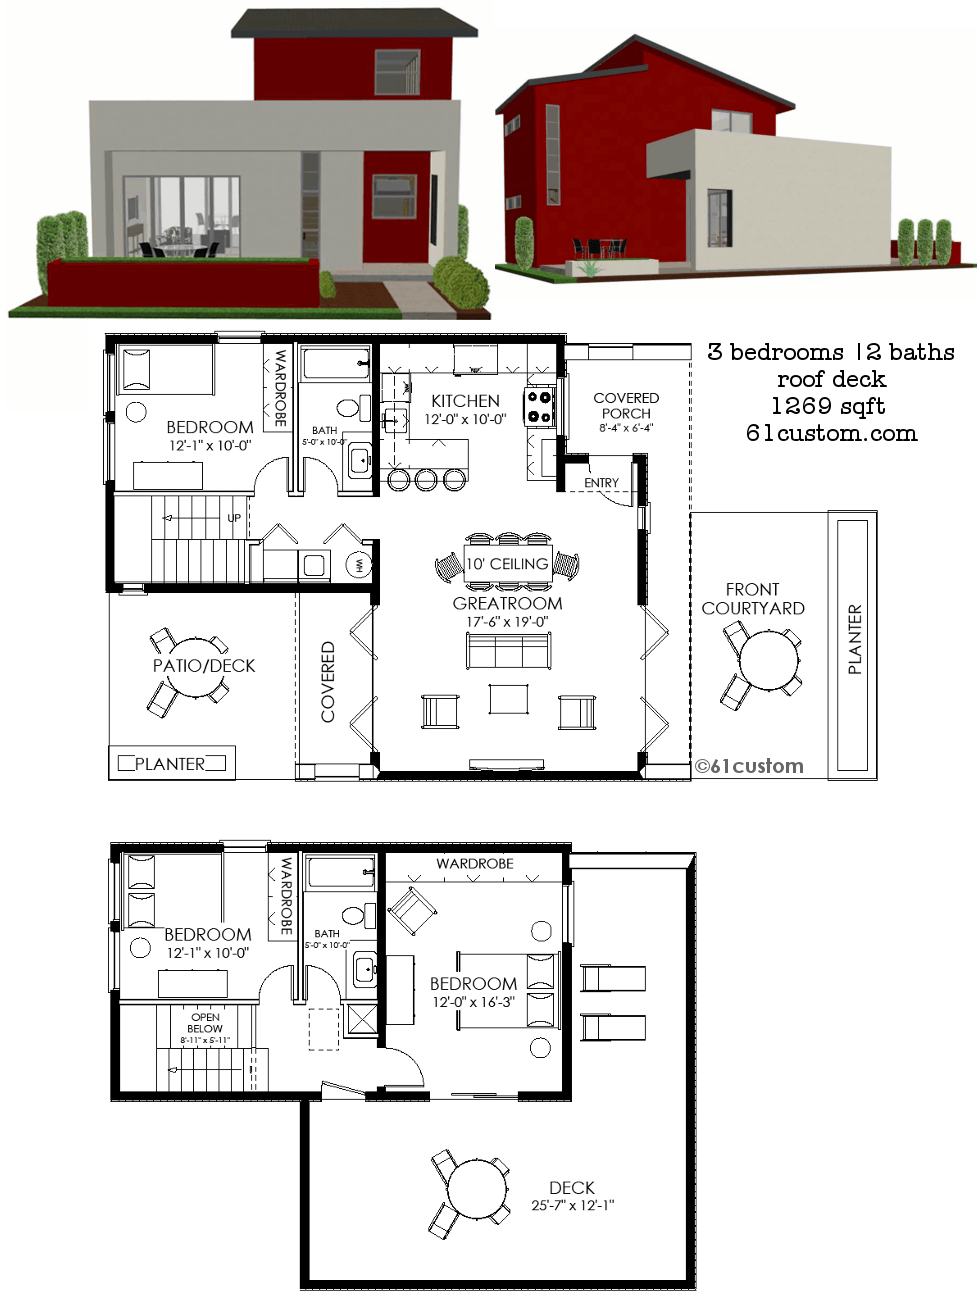 small modern house plan 1269 61custom - Small Modern House Plans